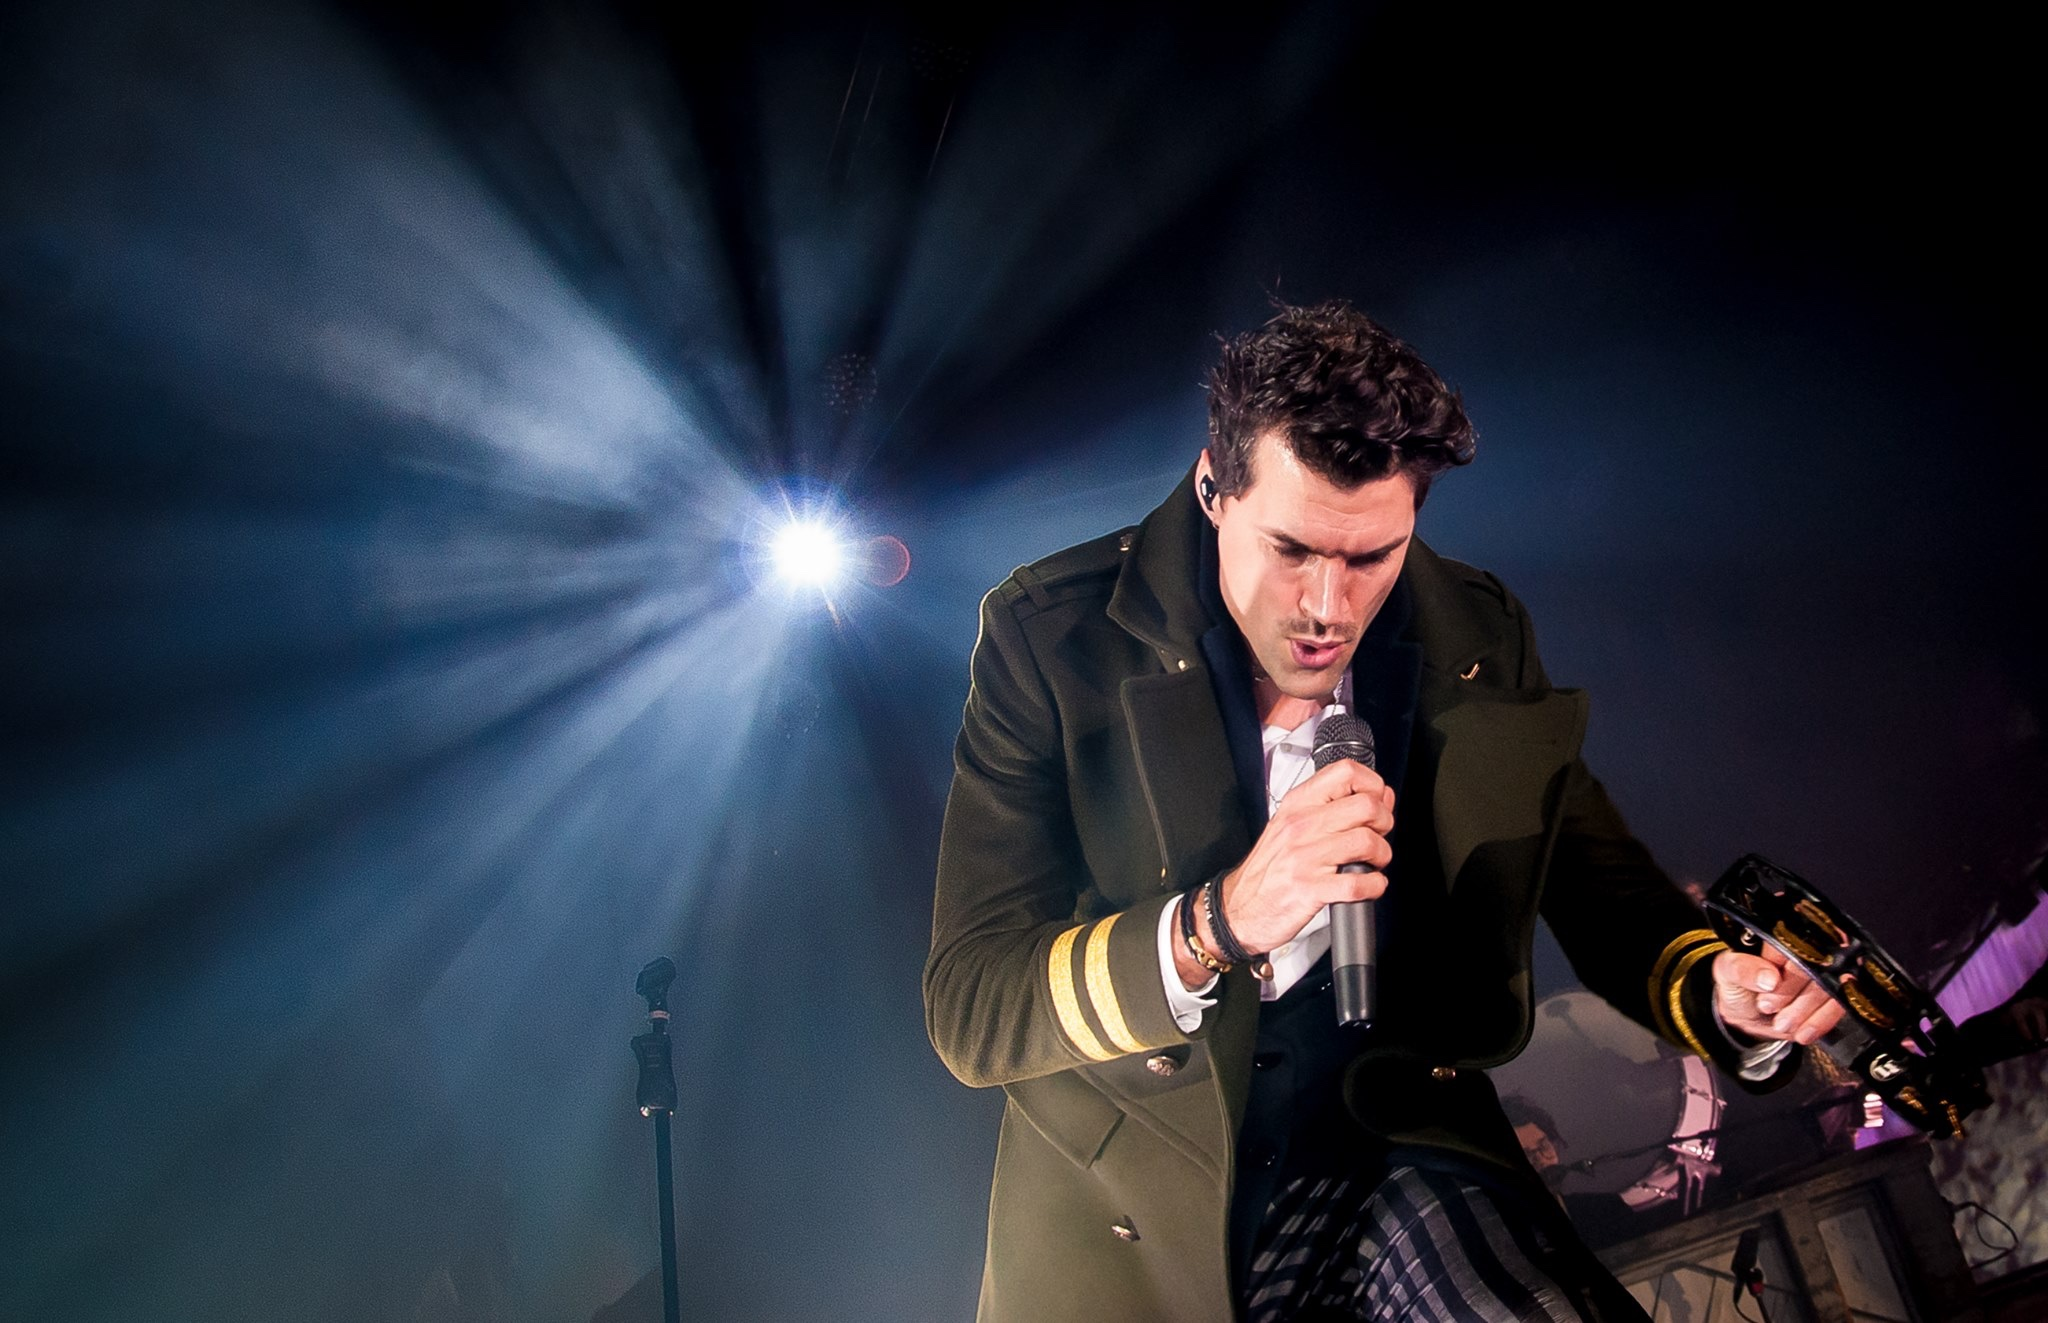 For King And Country Christmas.For King And Country Wells Fargo Arena 12 20 18 Listeniowa